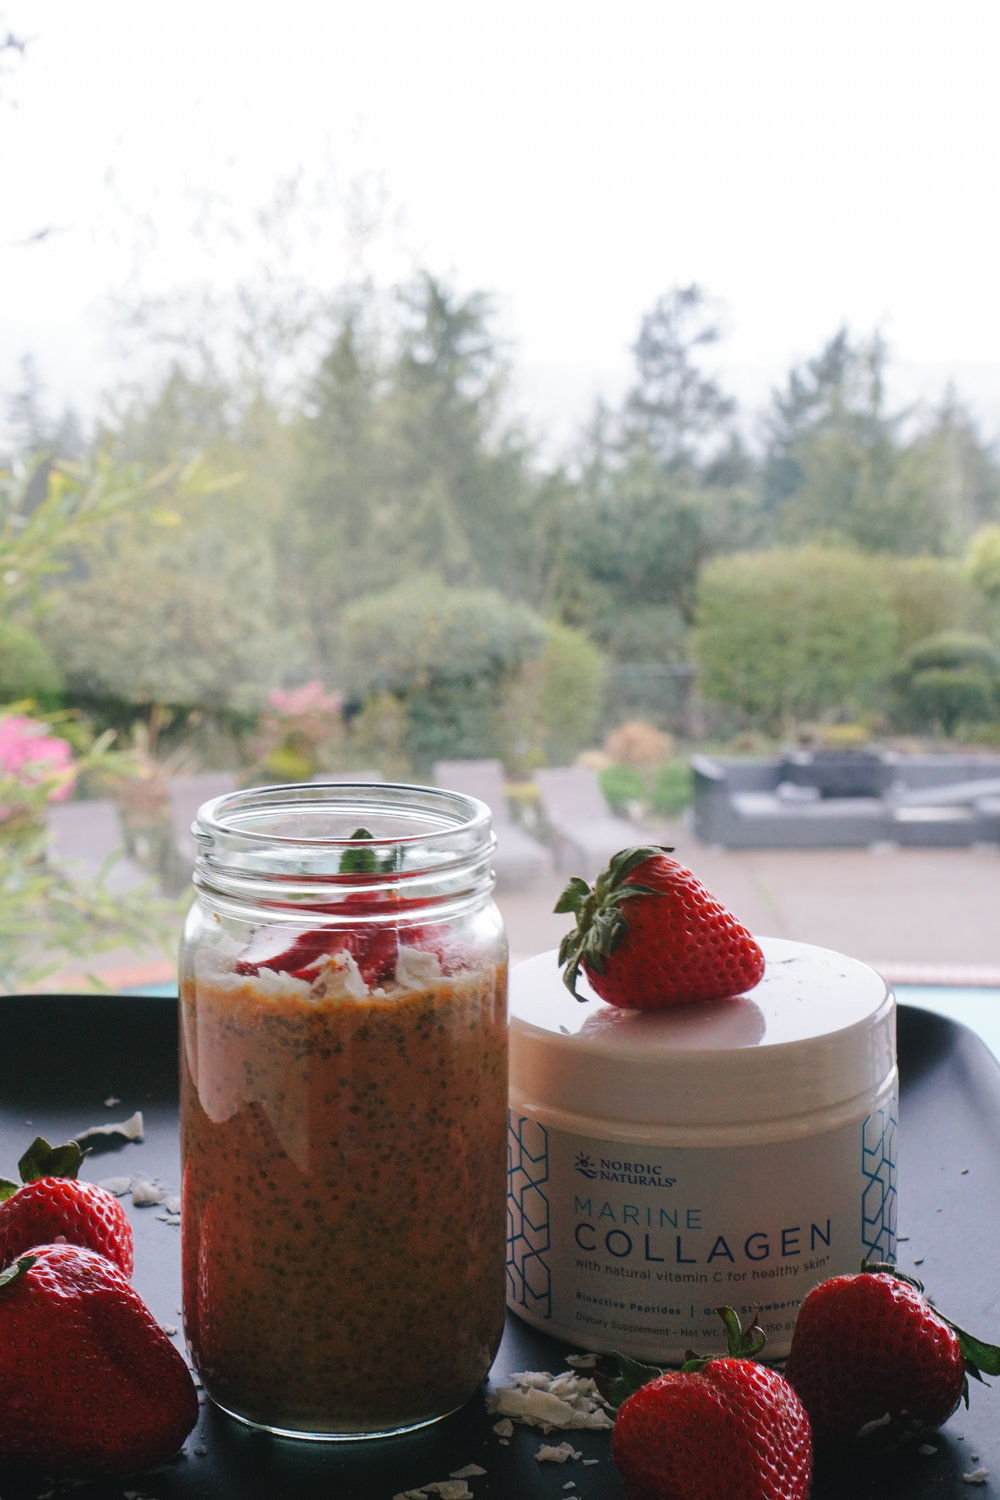 Nordic Naturals Collagen Strawberry Fields Collagen Chia Pudding  - healthy meals, gluten free, keto friendly, low carb - www.letsregale.com _ 8.jpg